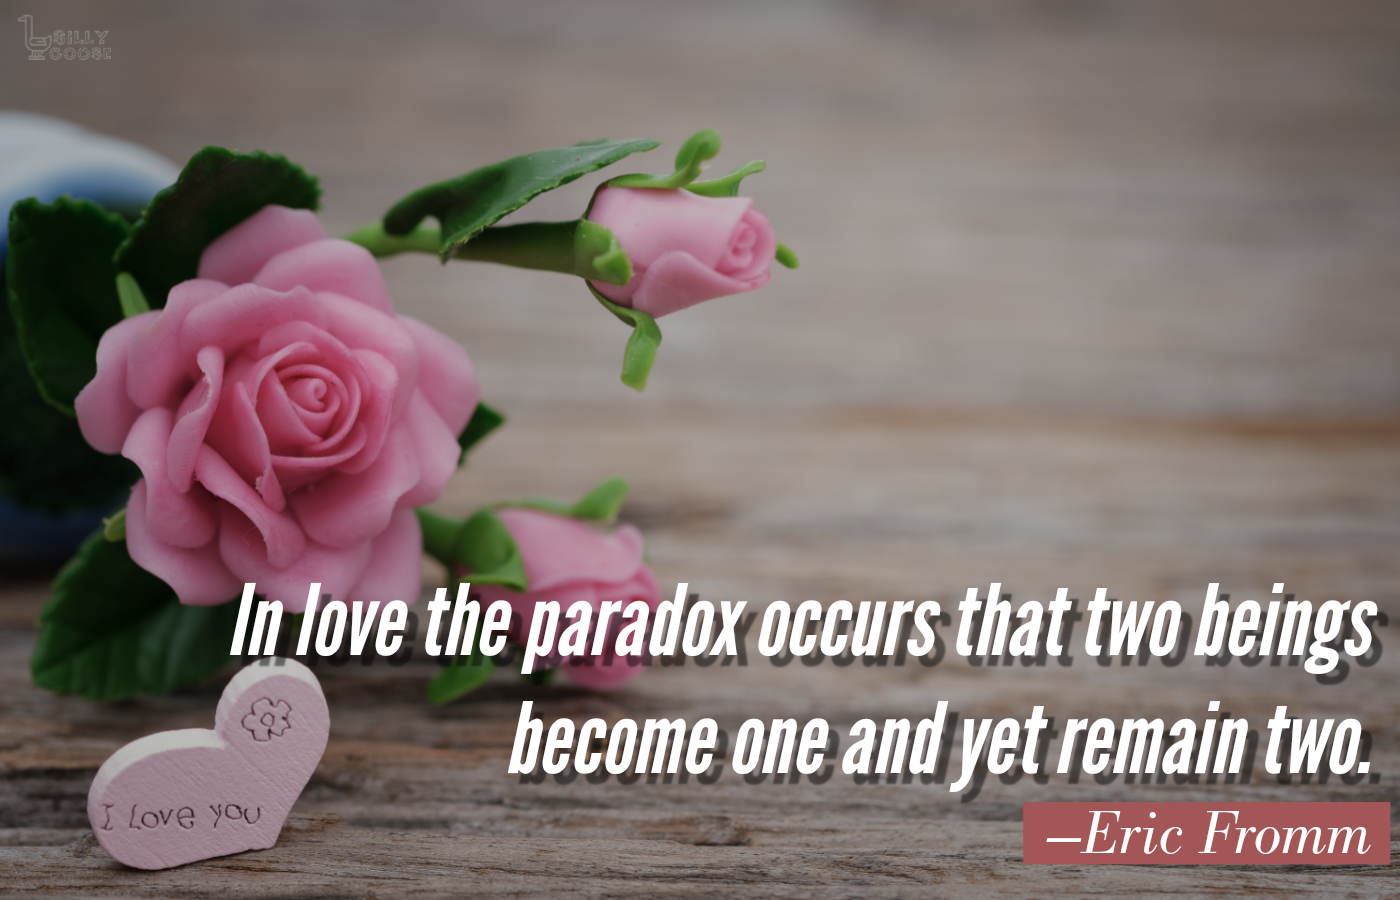 """In love the paradox occurs that two beings become one and yet remain two."" —Eric Fromm [1400×900]"